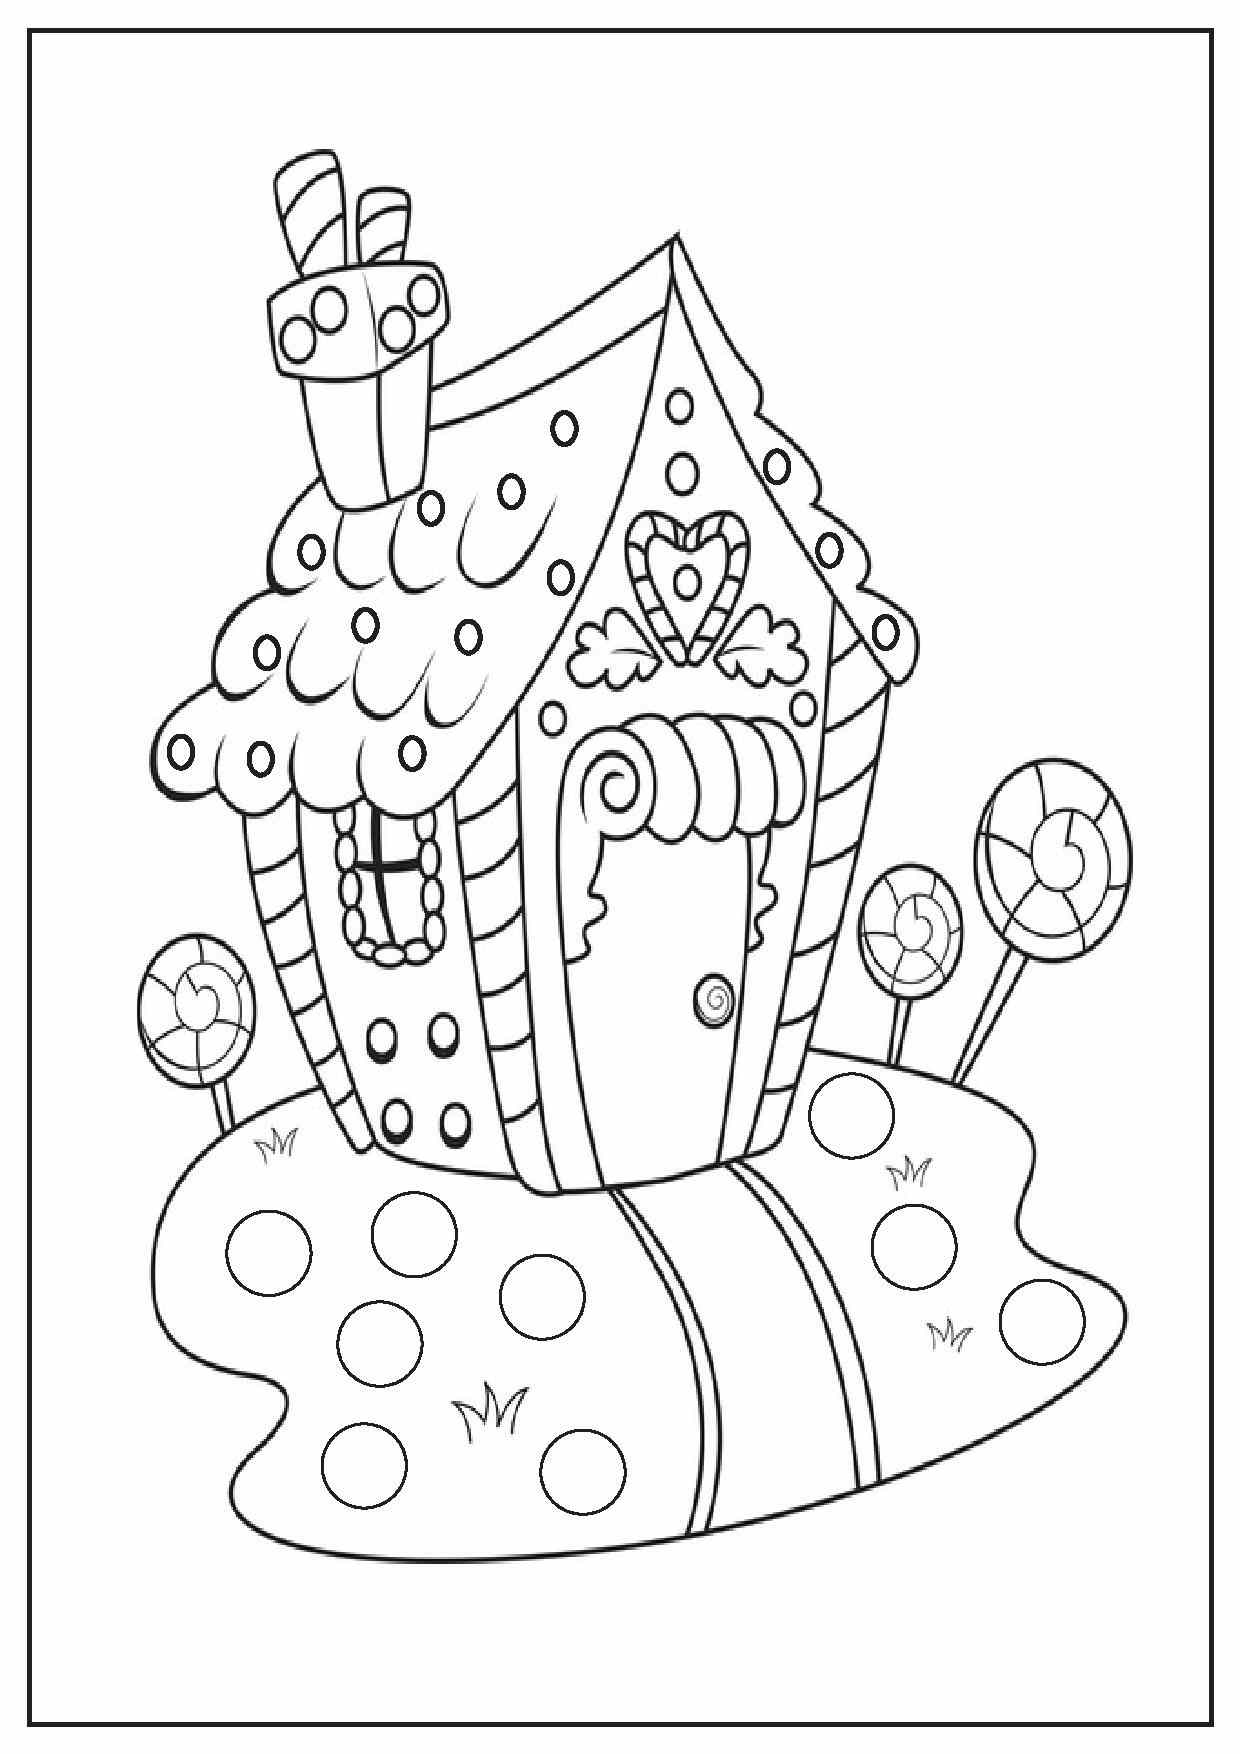 1240x1754 Christmas Printable Coloring Pages Lovely Christmas Stocking